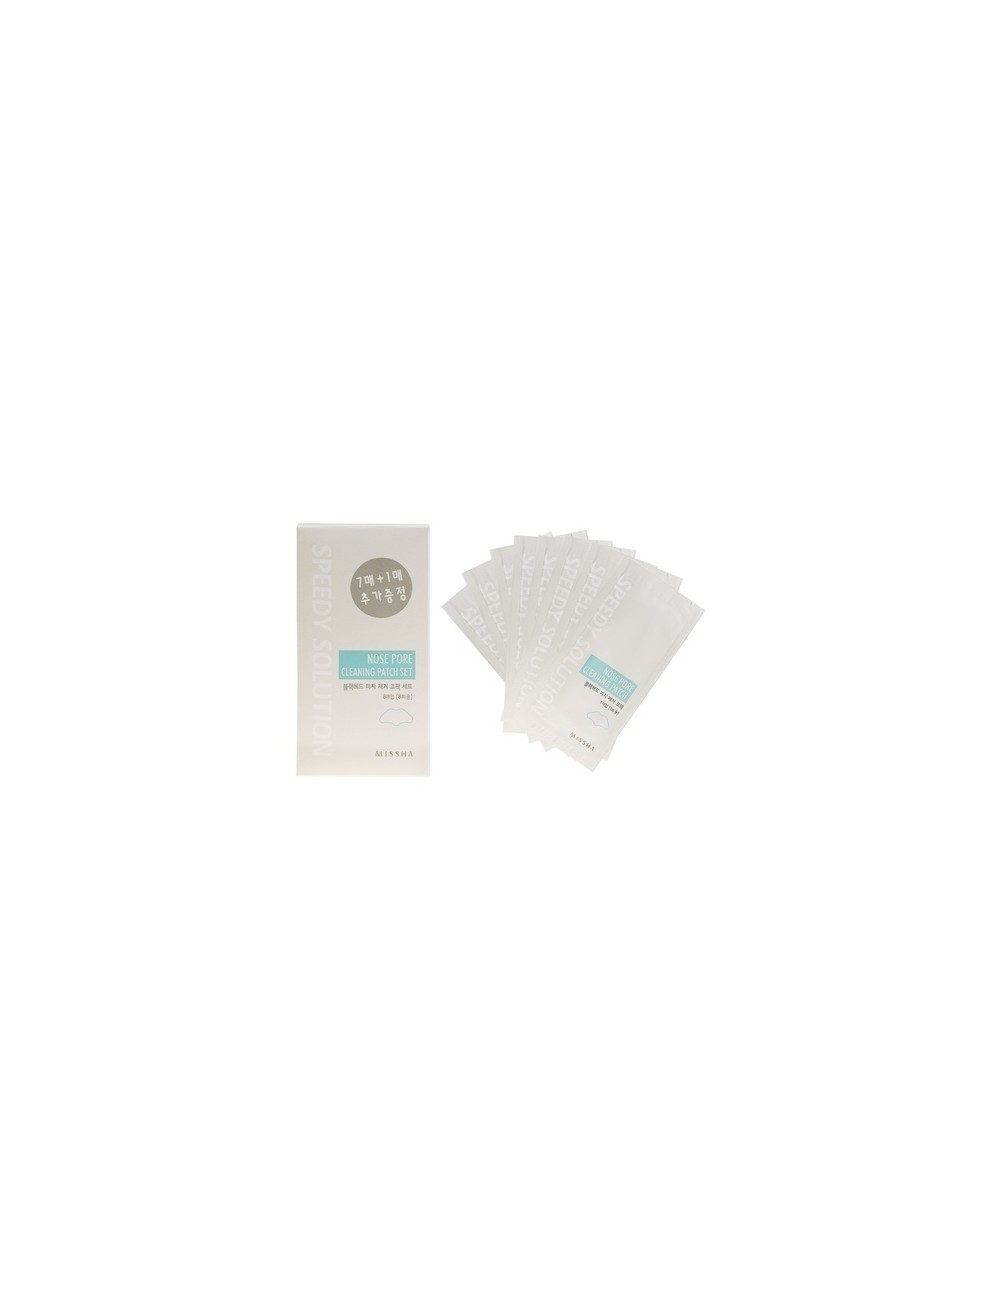 Parches de Limpieza de Poros MISSHA Speedy Solution Nose Pore Cleaning Patch Set